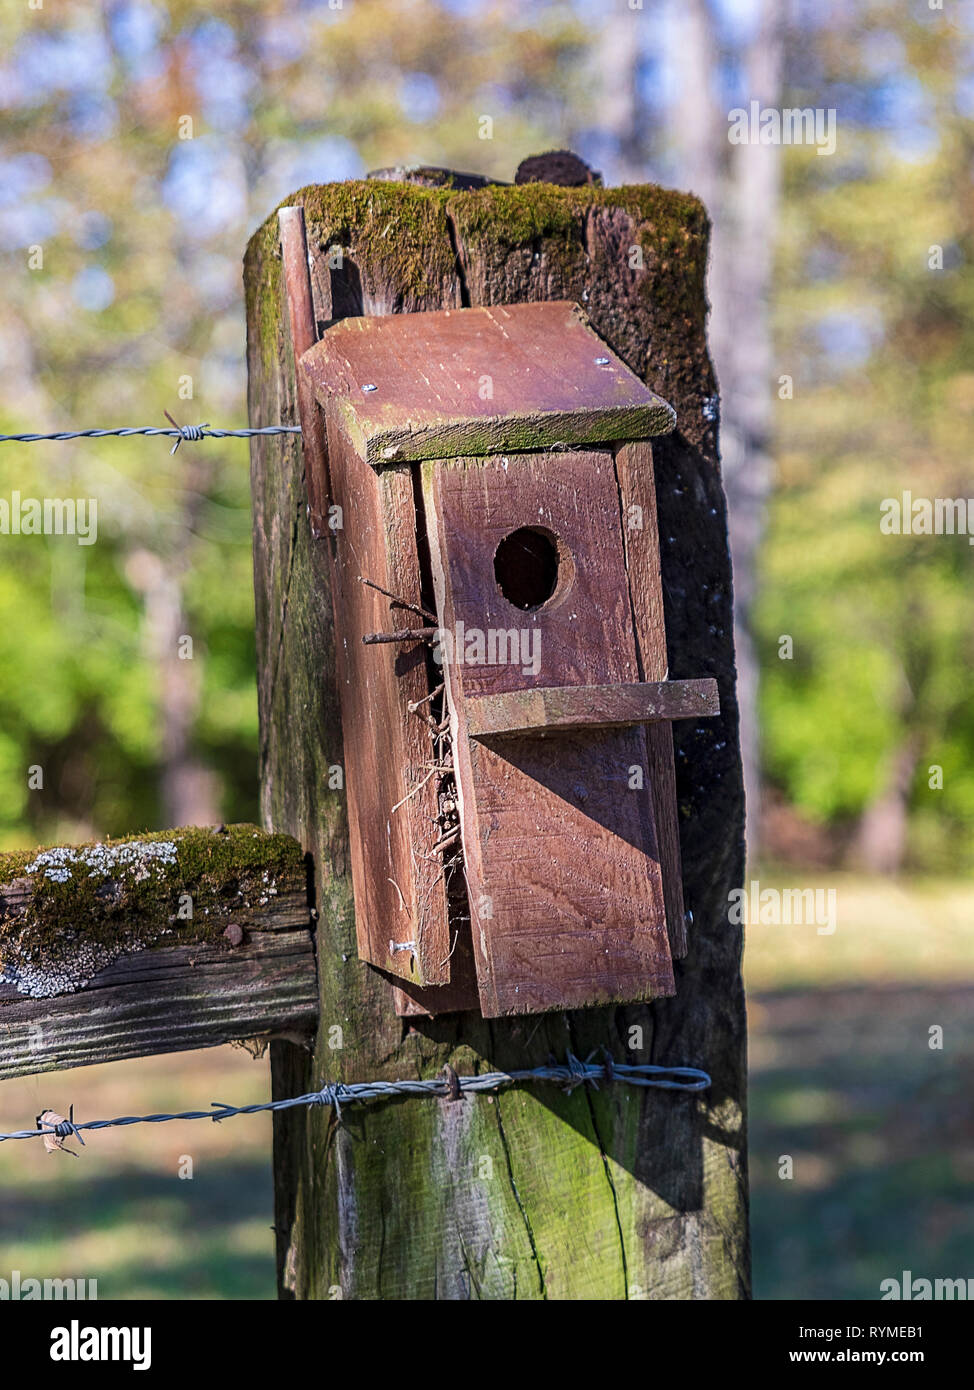 A wooden birdhouse on a mossy fence post. - Stock Image